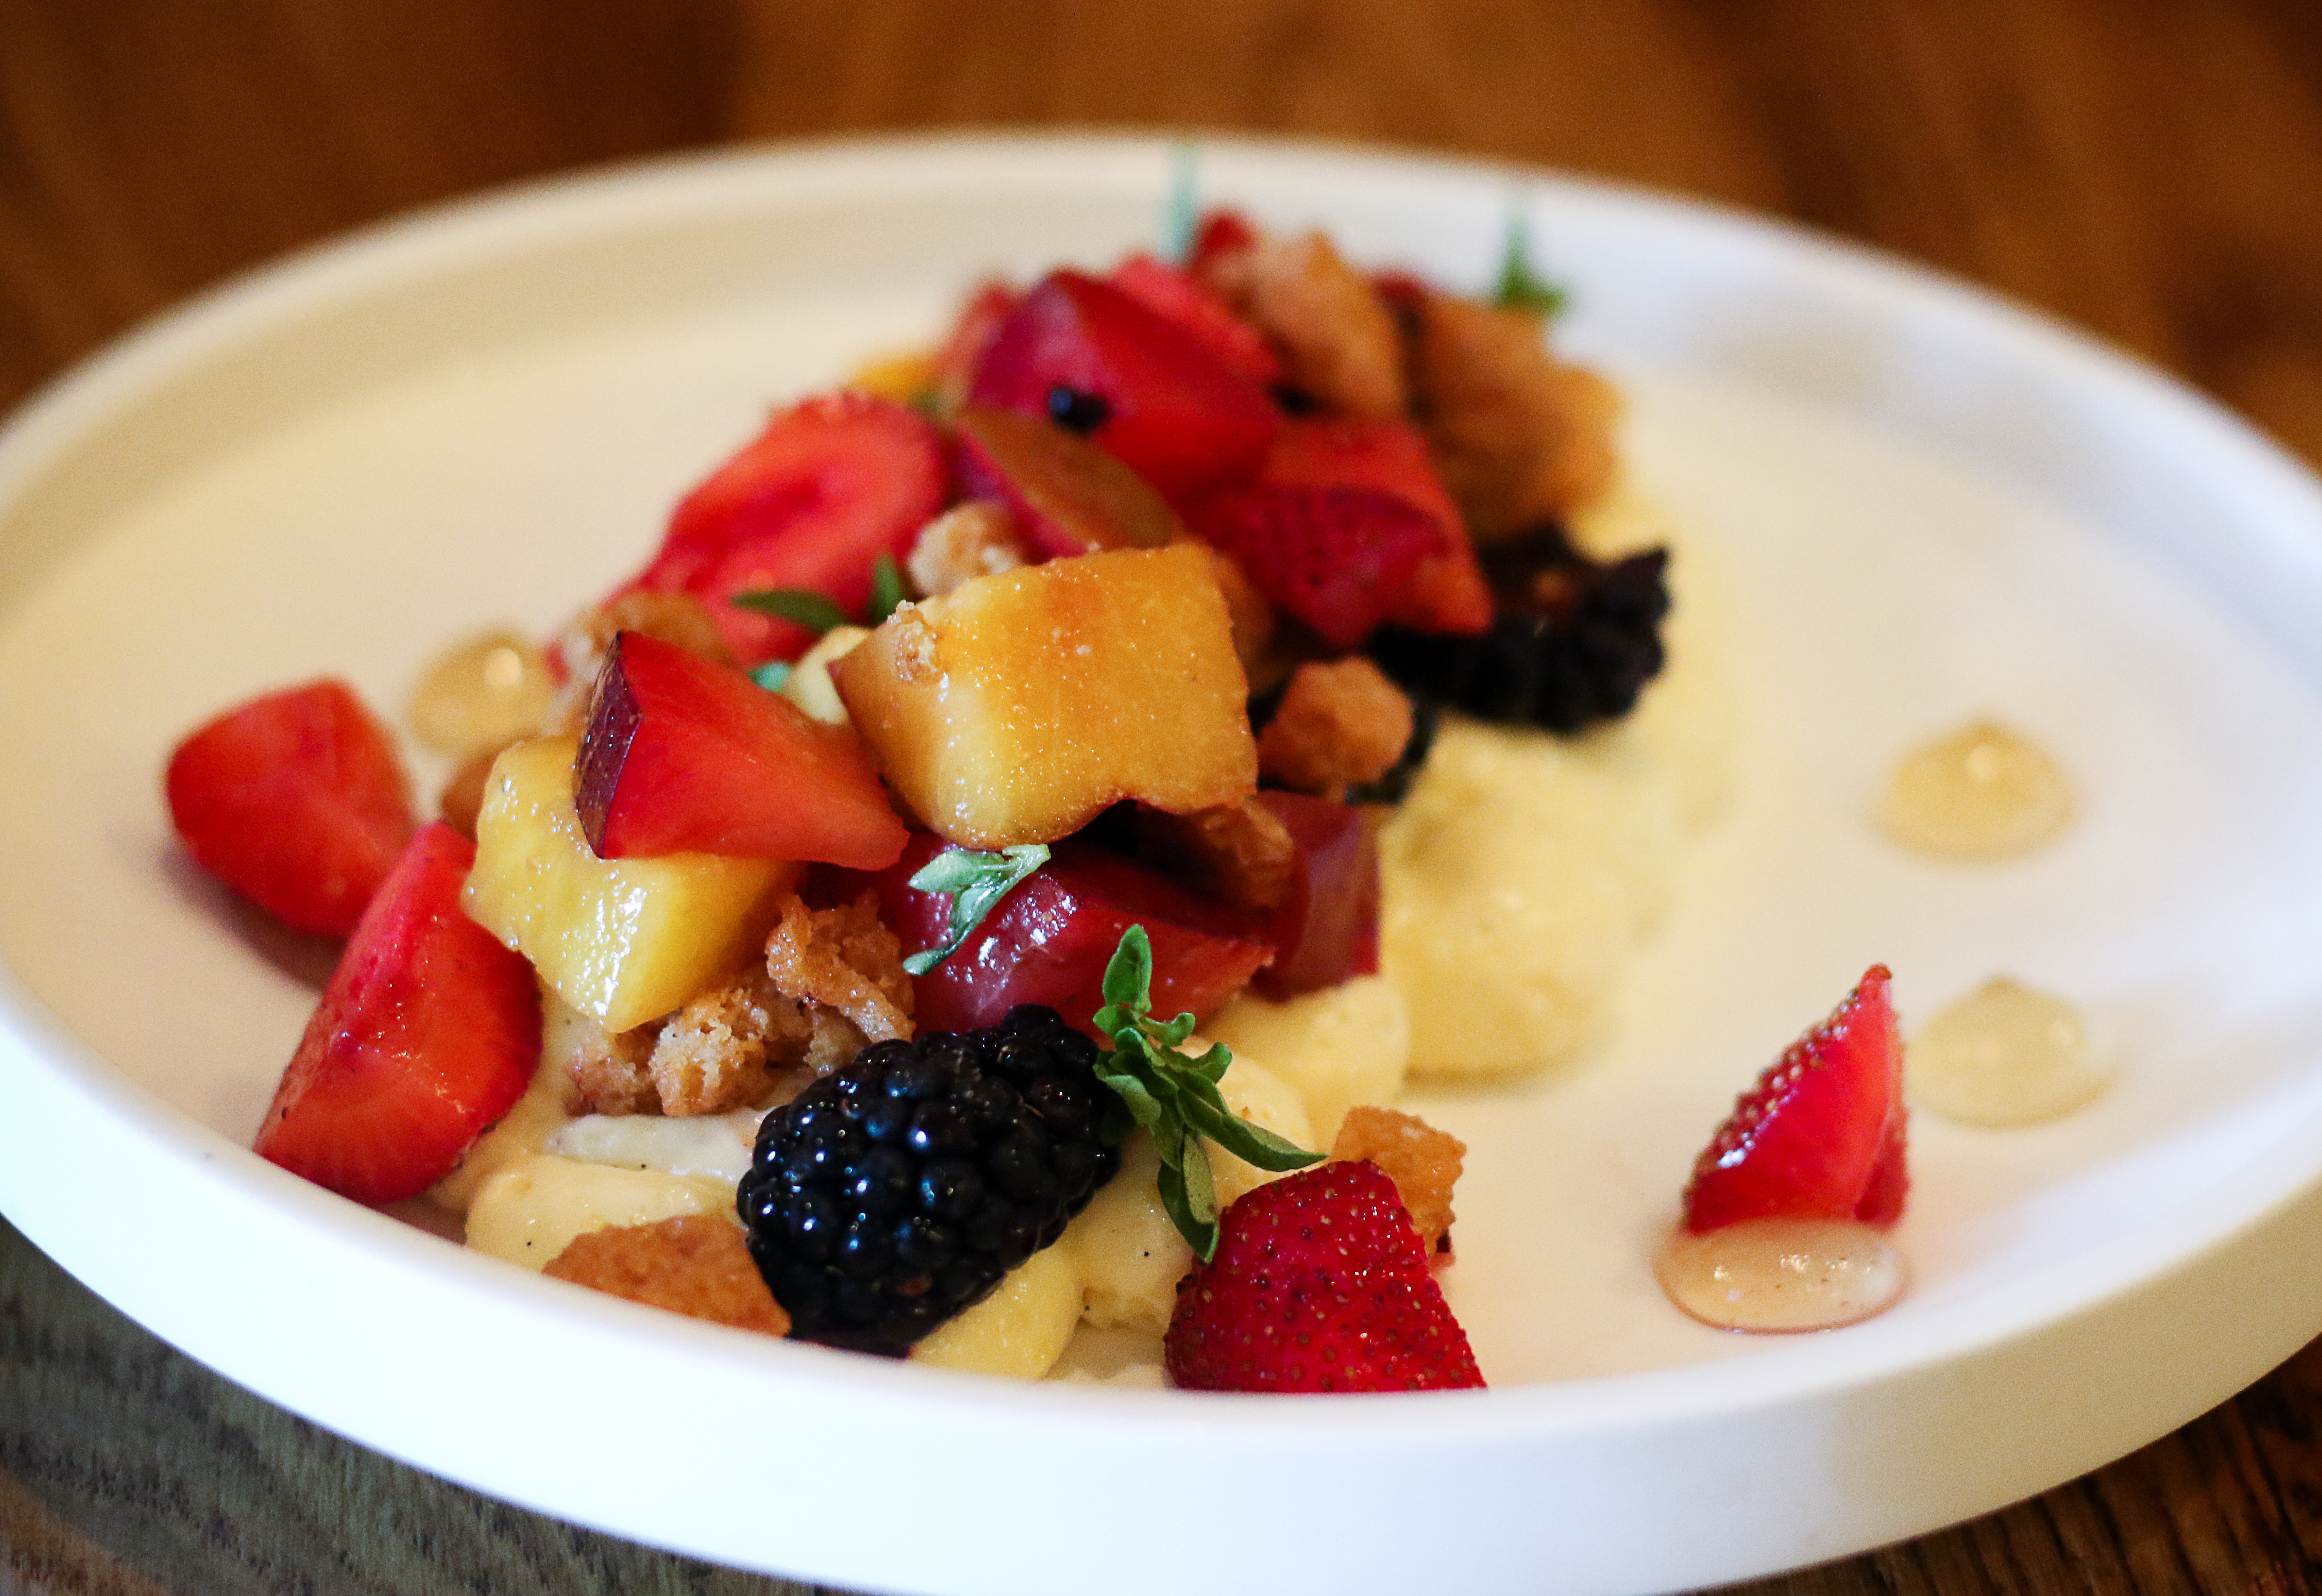 Deconstructed fromage blanc cheesecake with summer fruit at the Brass Rabbit in Healdsburg. Heather Irwin/PD